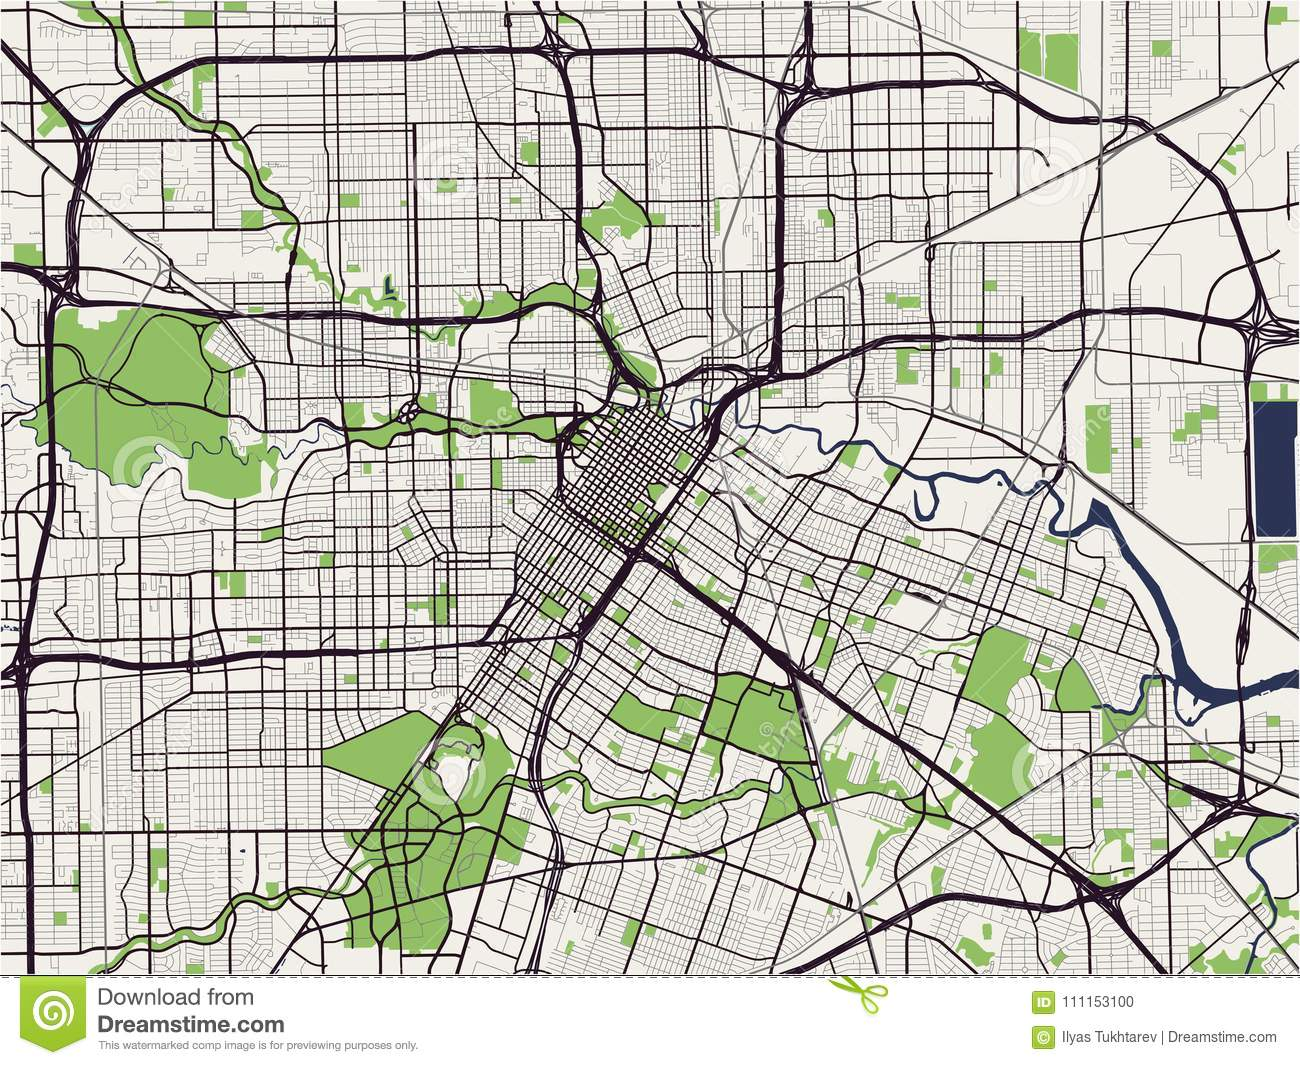 Map Of The City Of Houston, U.S. State Of Texas, USA Stock ... Map City Of Houston on texas map, houston independent school district map, citycentre houston map, los angeles houston map, water wall houston map, northeast houston map, downtown houston map, houston city district map, city md map, houston city road map, city nc map, city ny map, md anderson houston map, houston city council map, harris county zip code map, 1920s houston map, houston city limits map, movie theaters houston map, detroit houston map, city arkansas map,